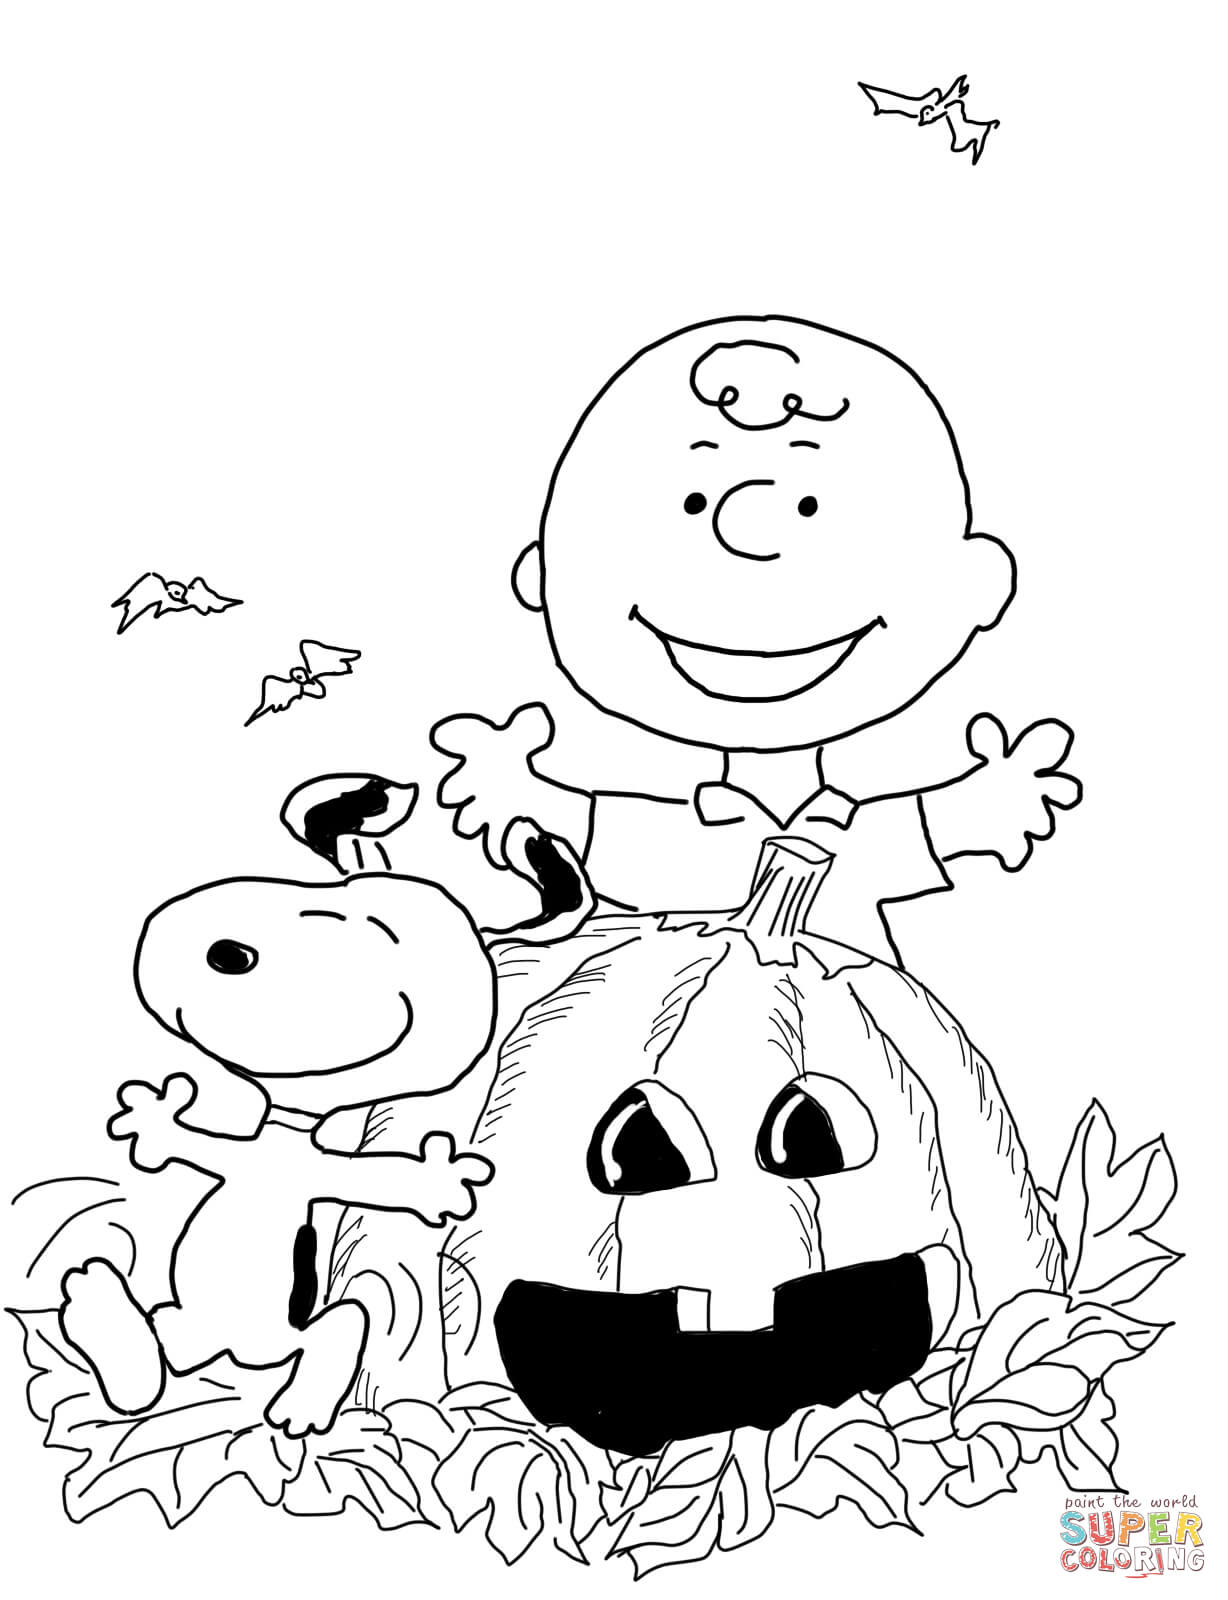 Click the charlie brown halloween coloring